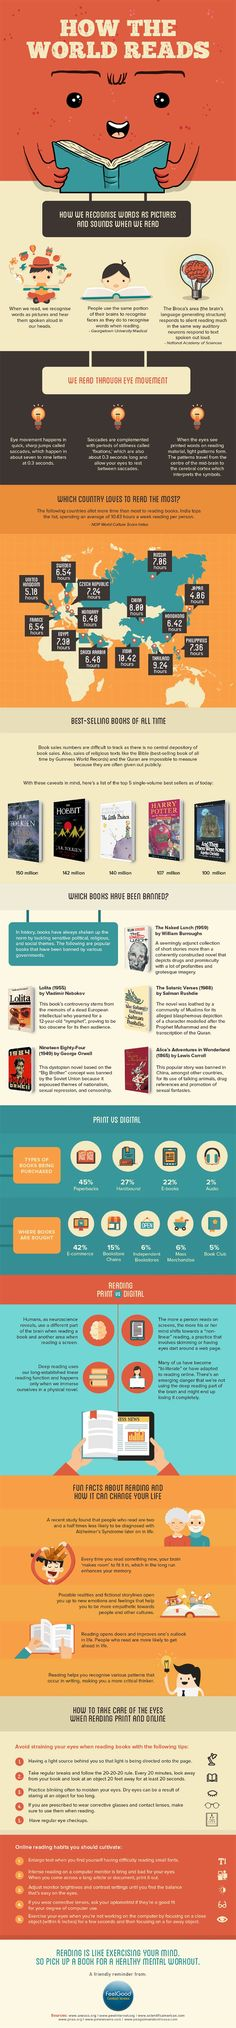 INFOGRAPHIC: How the World Reads